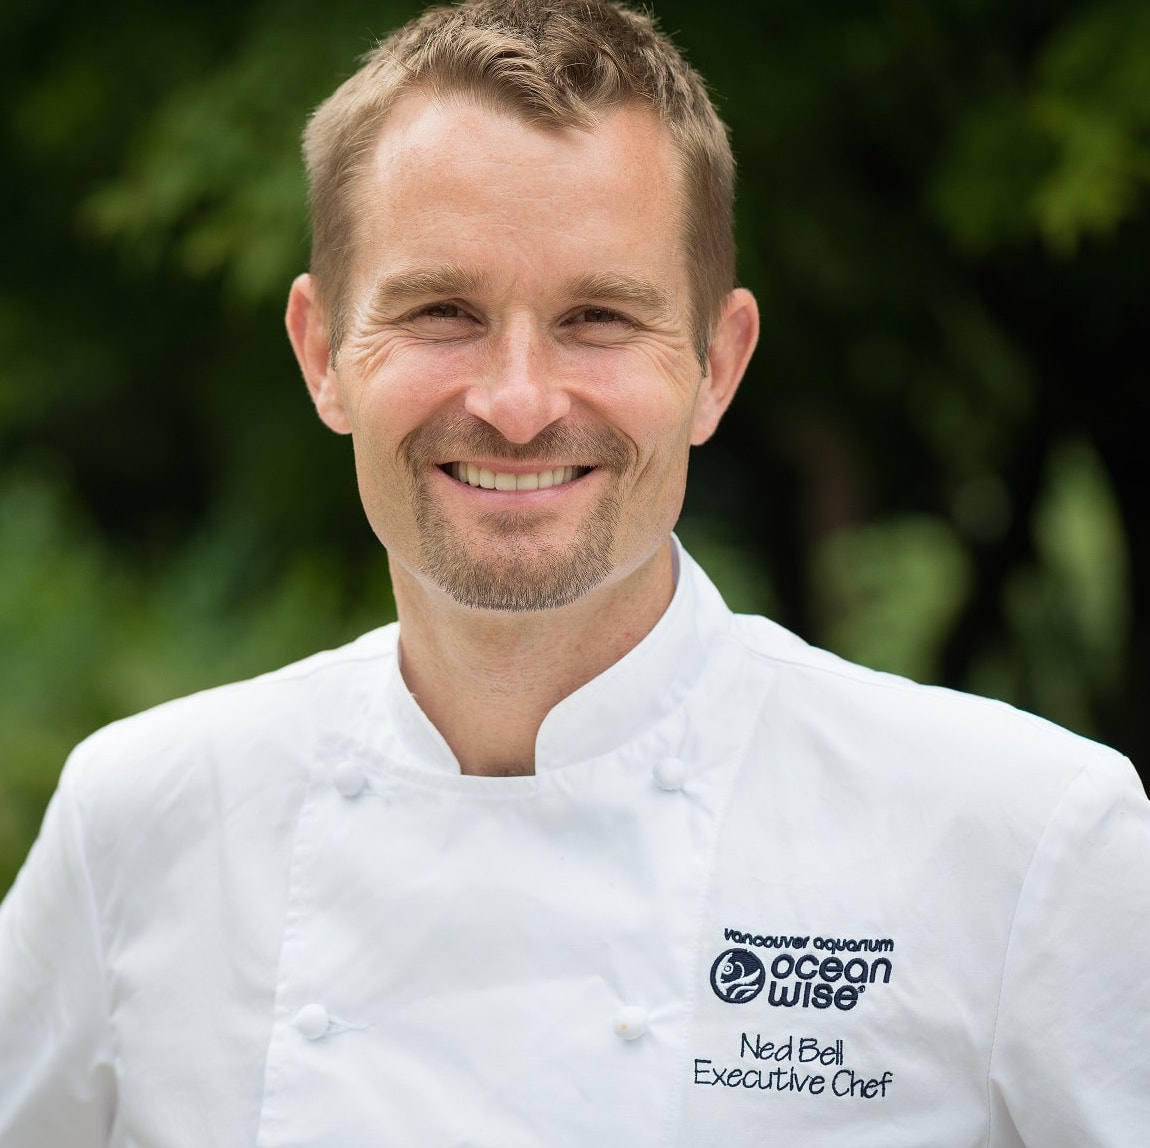 Ned Bell, Executive Chef